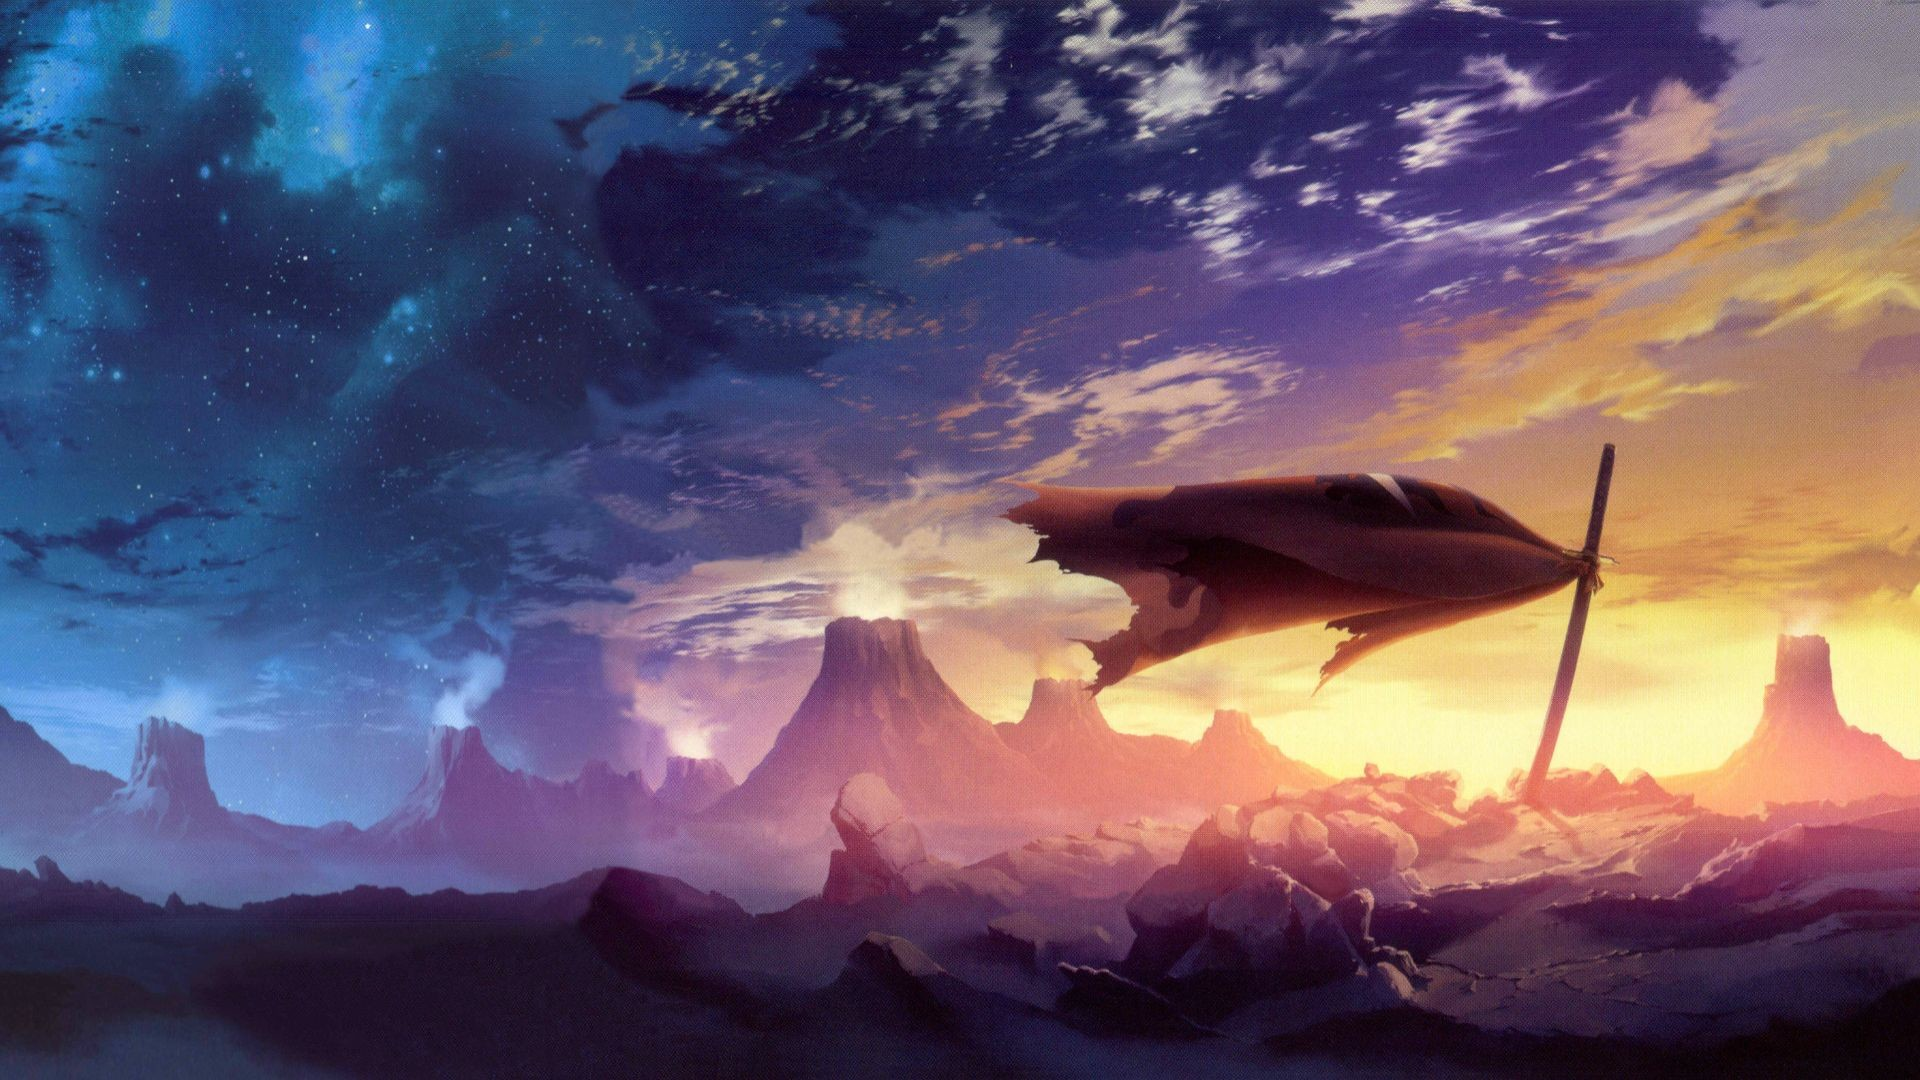 Anime Inspired Hd Fantasy Wallpapers For Your Collection: Awesome Anime Wallpaper (52+ Images